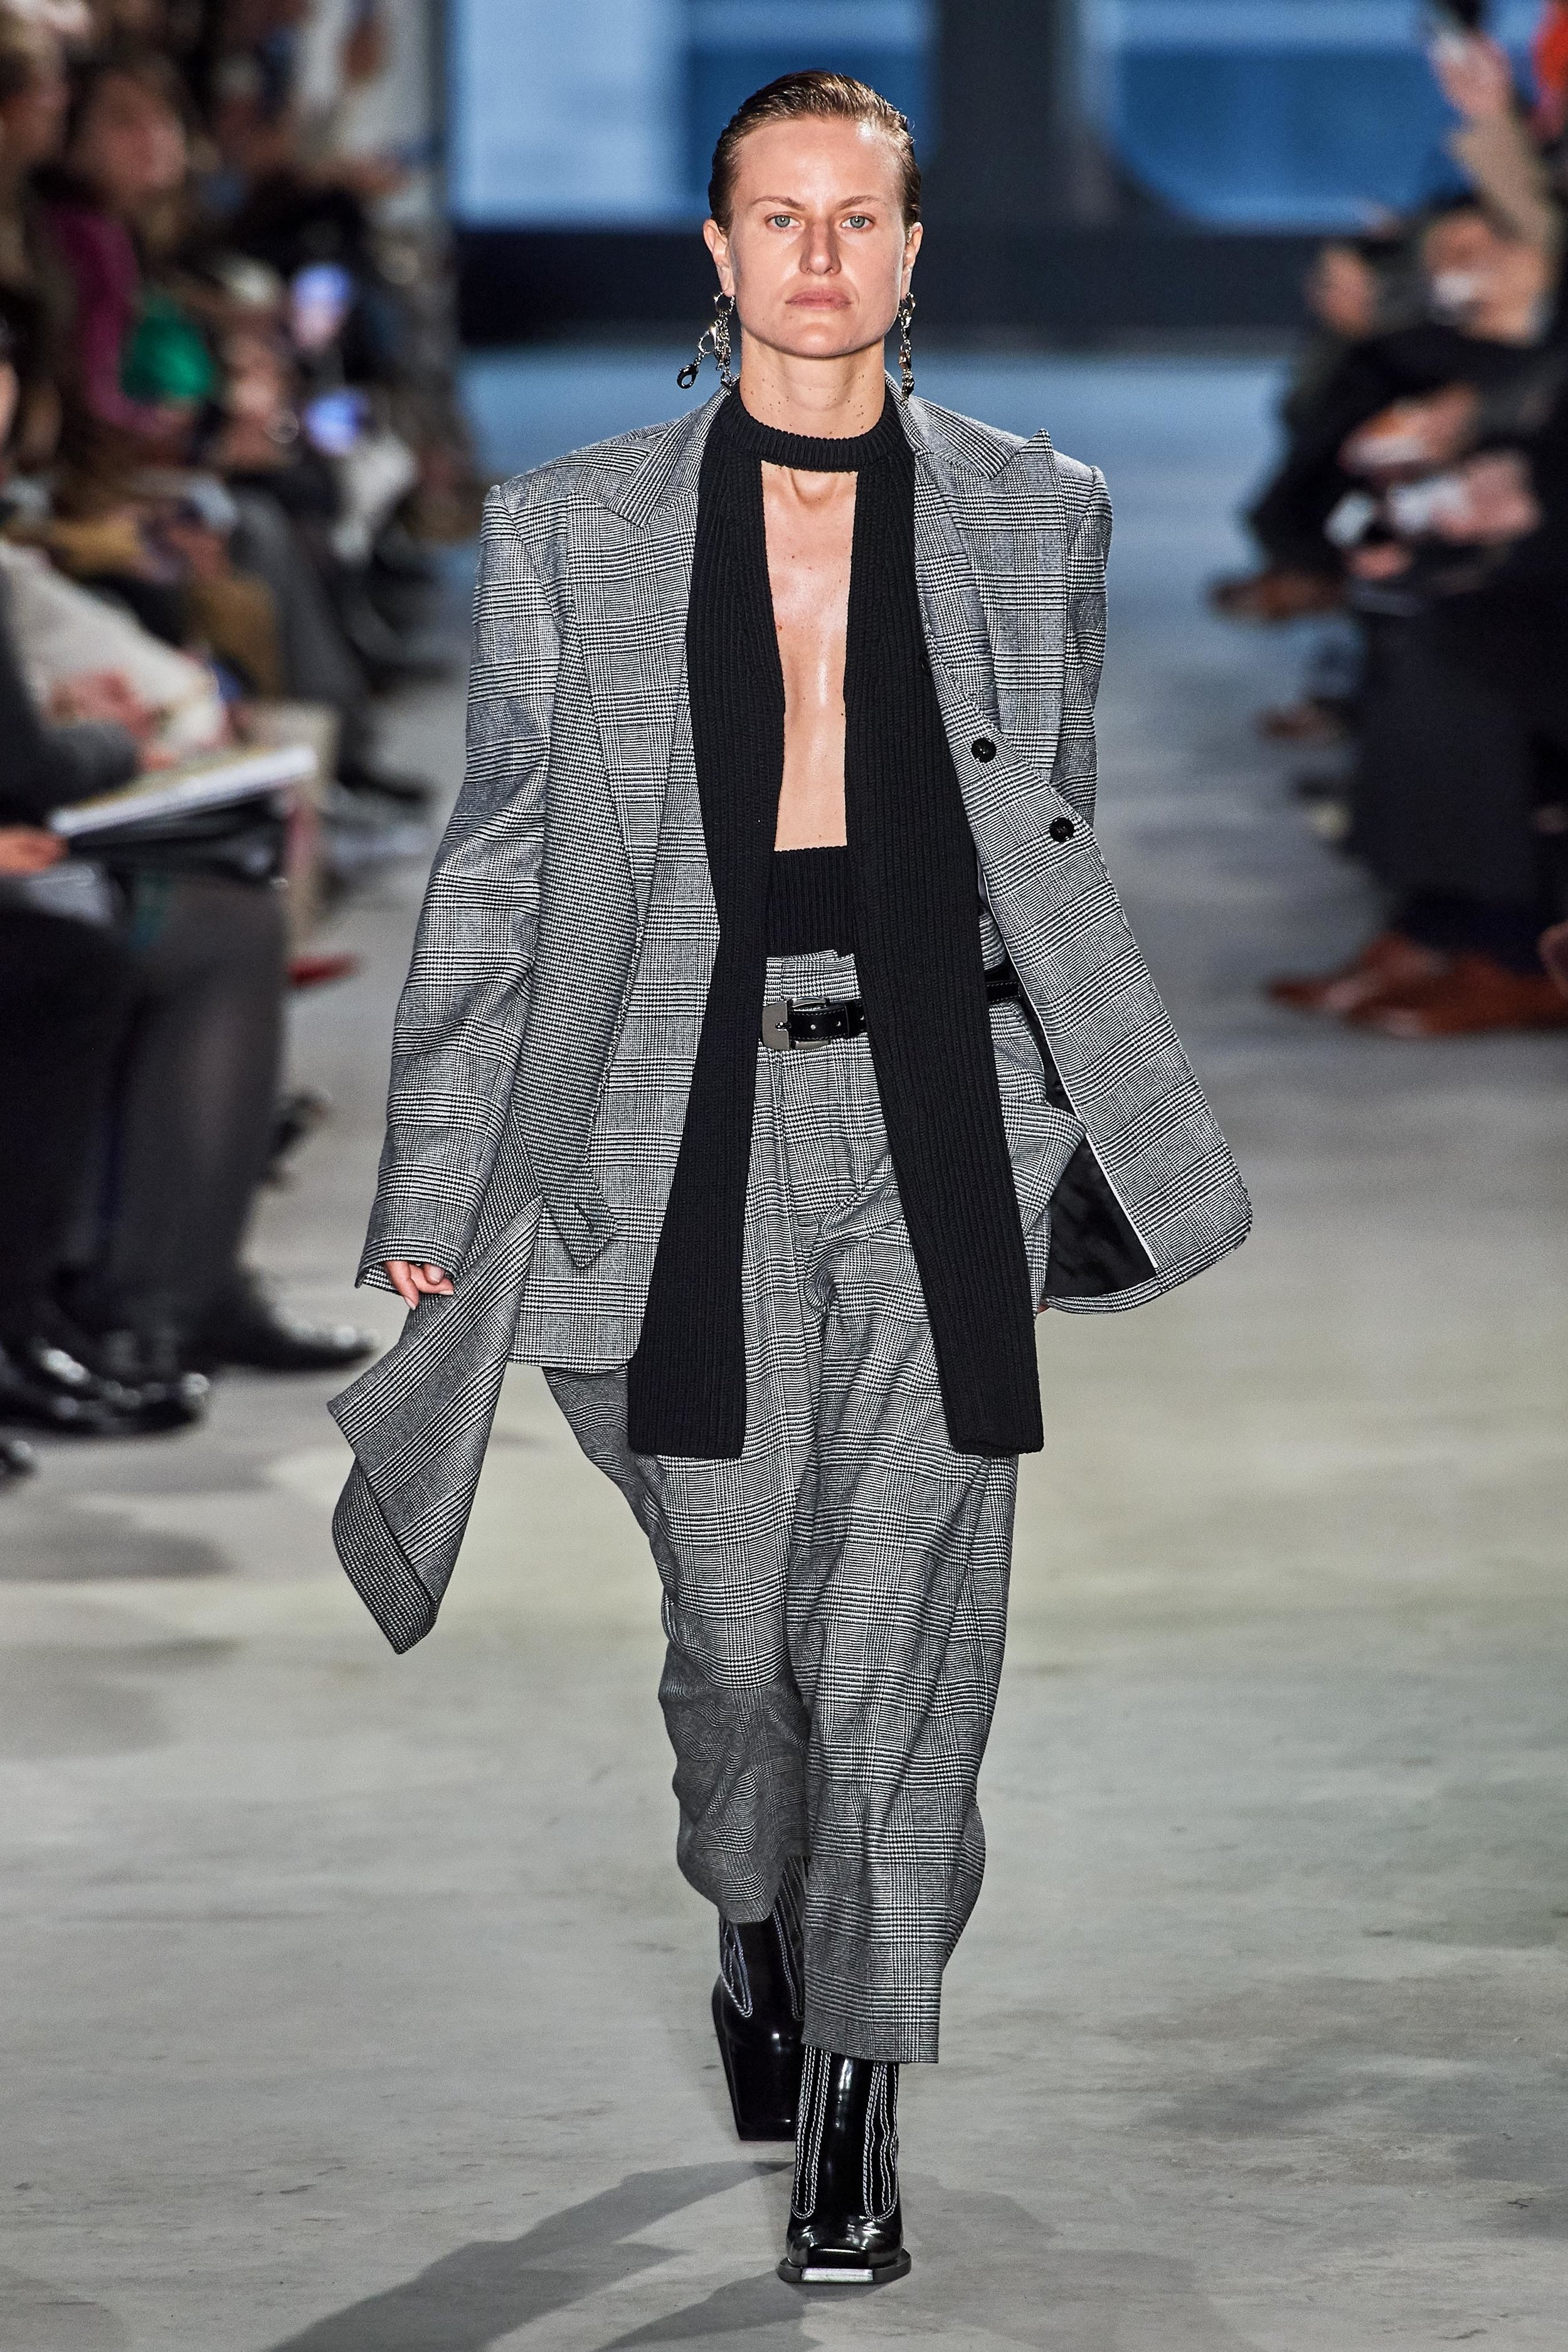 PROENZA SCHOULER, COURTESY VOGUE RUNWAY